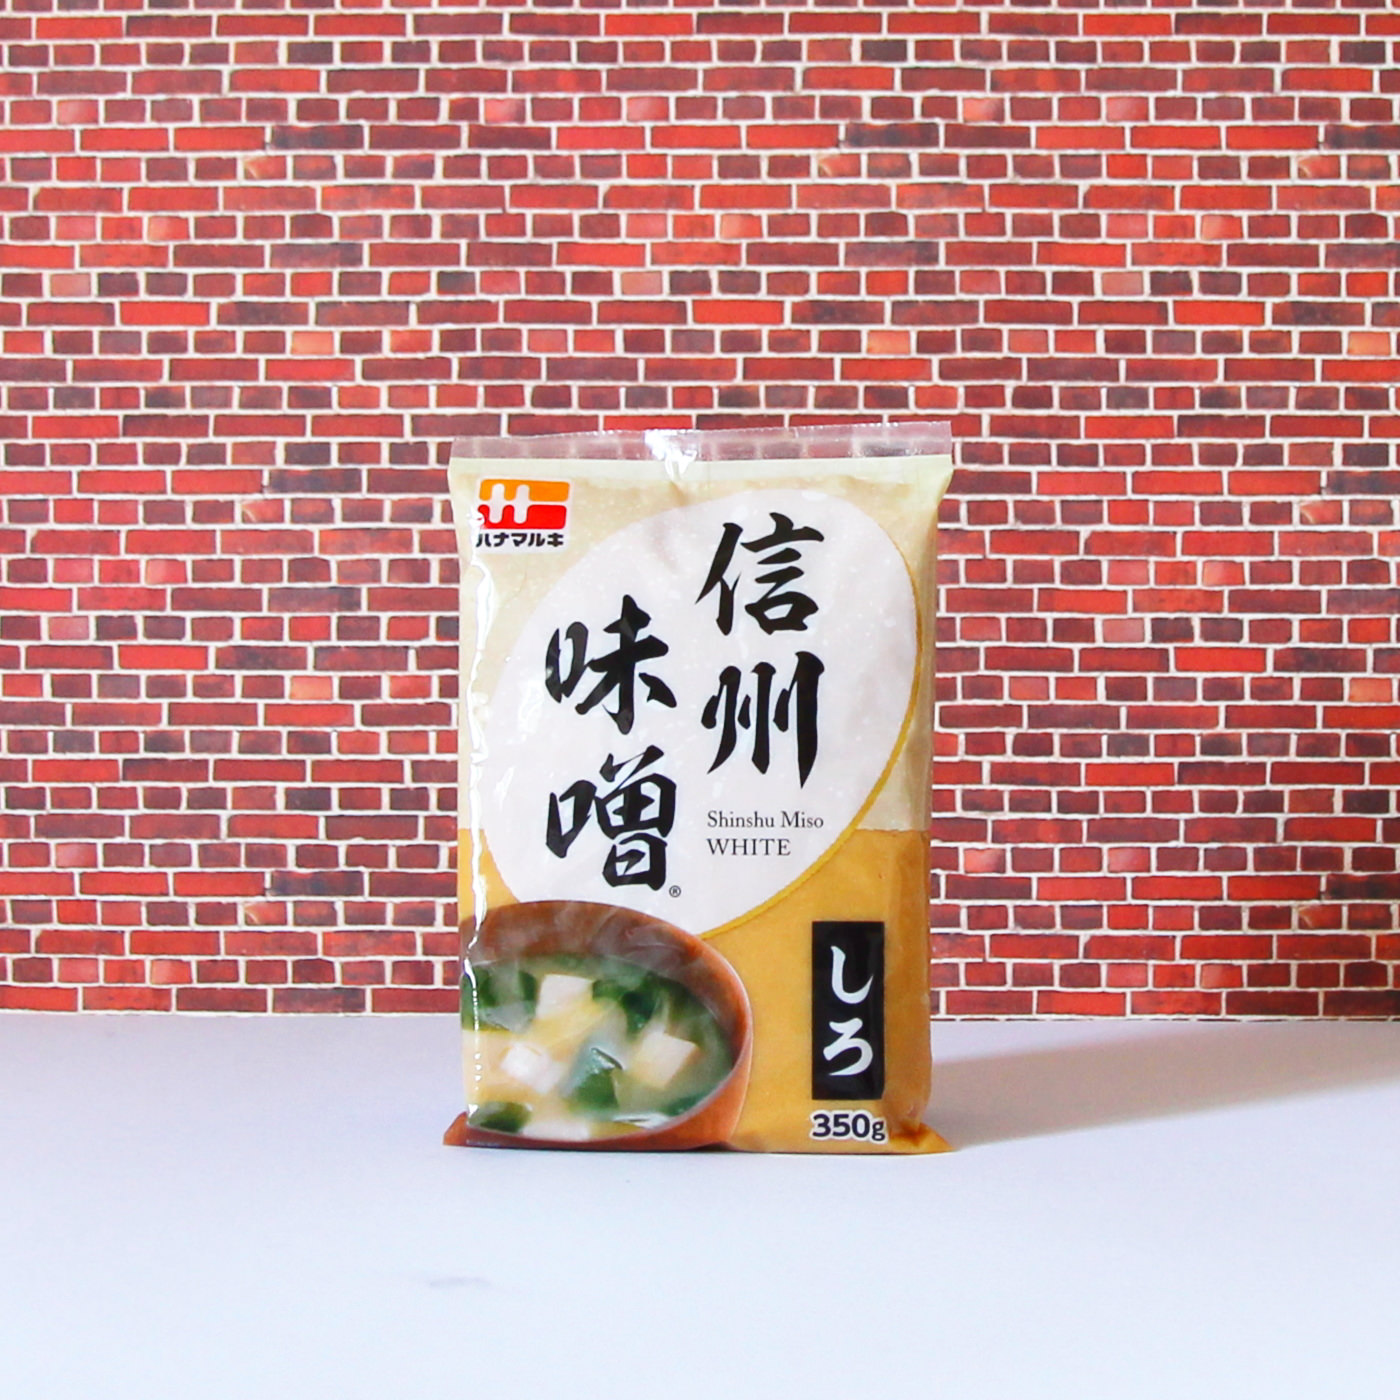 Miso-Paste von Hanamaruki.